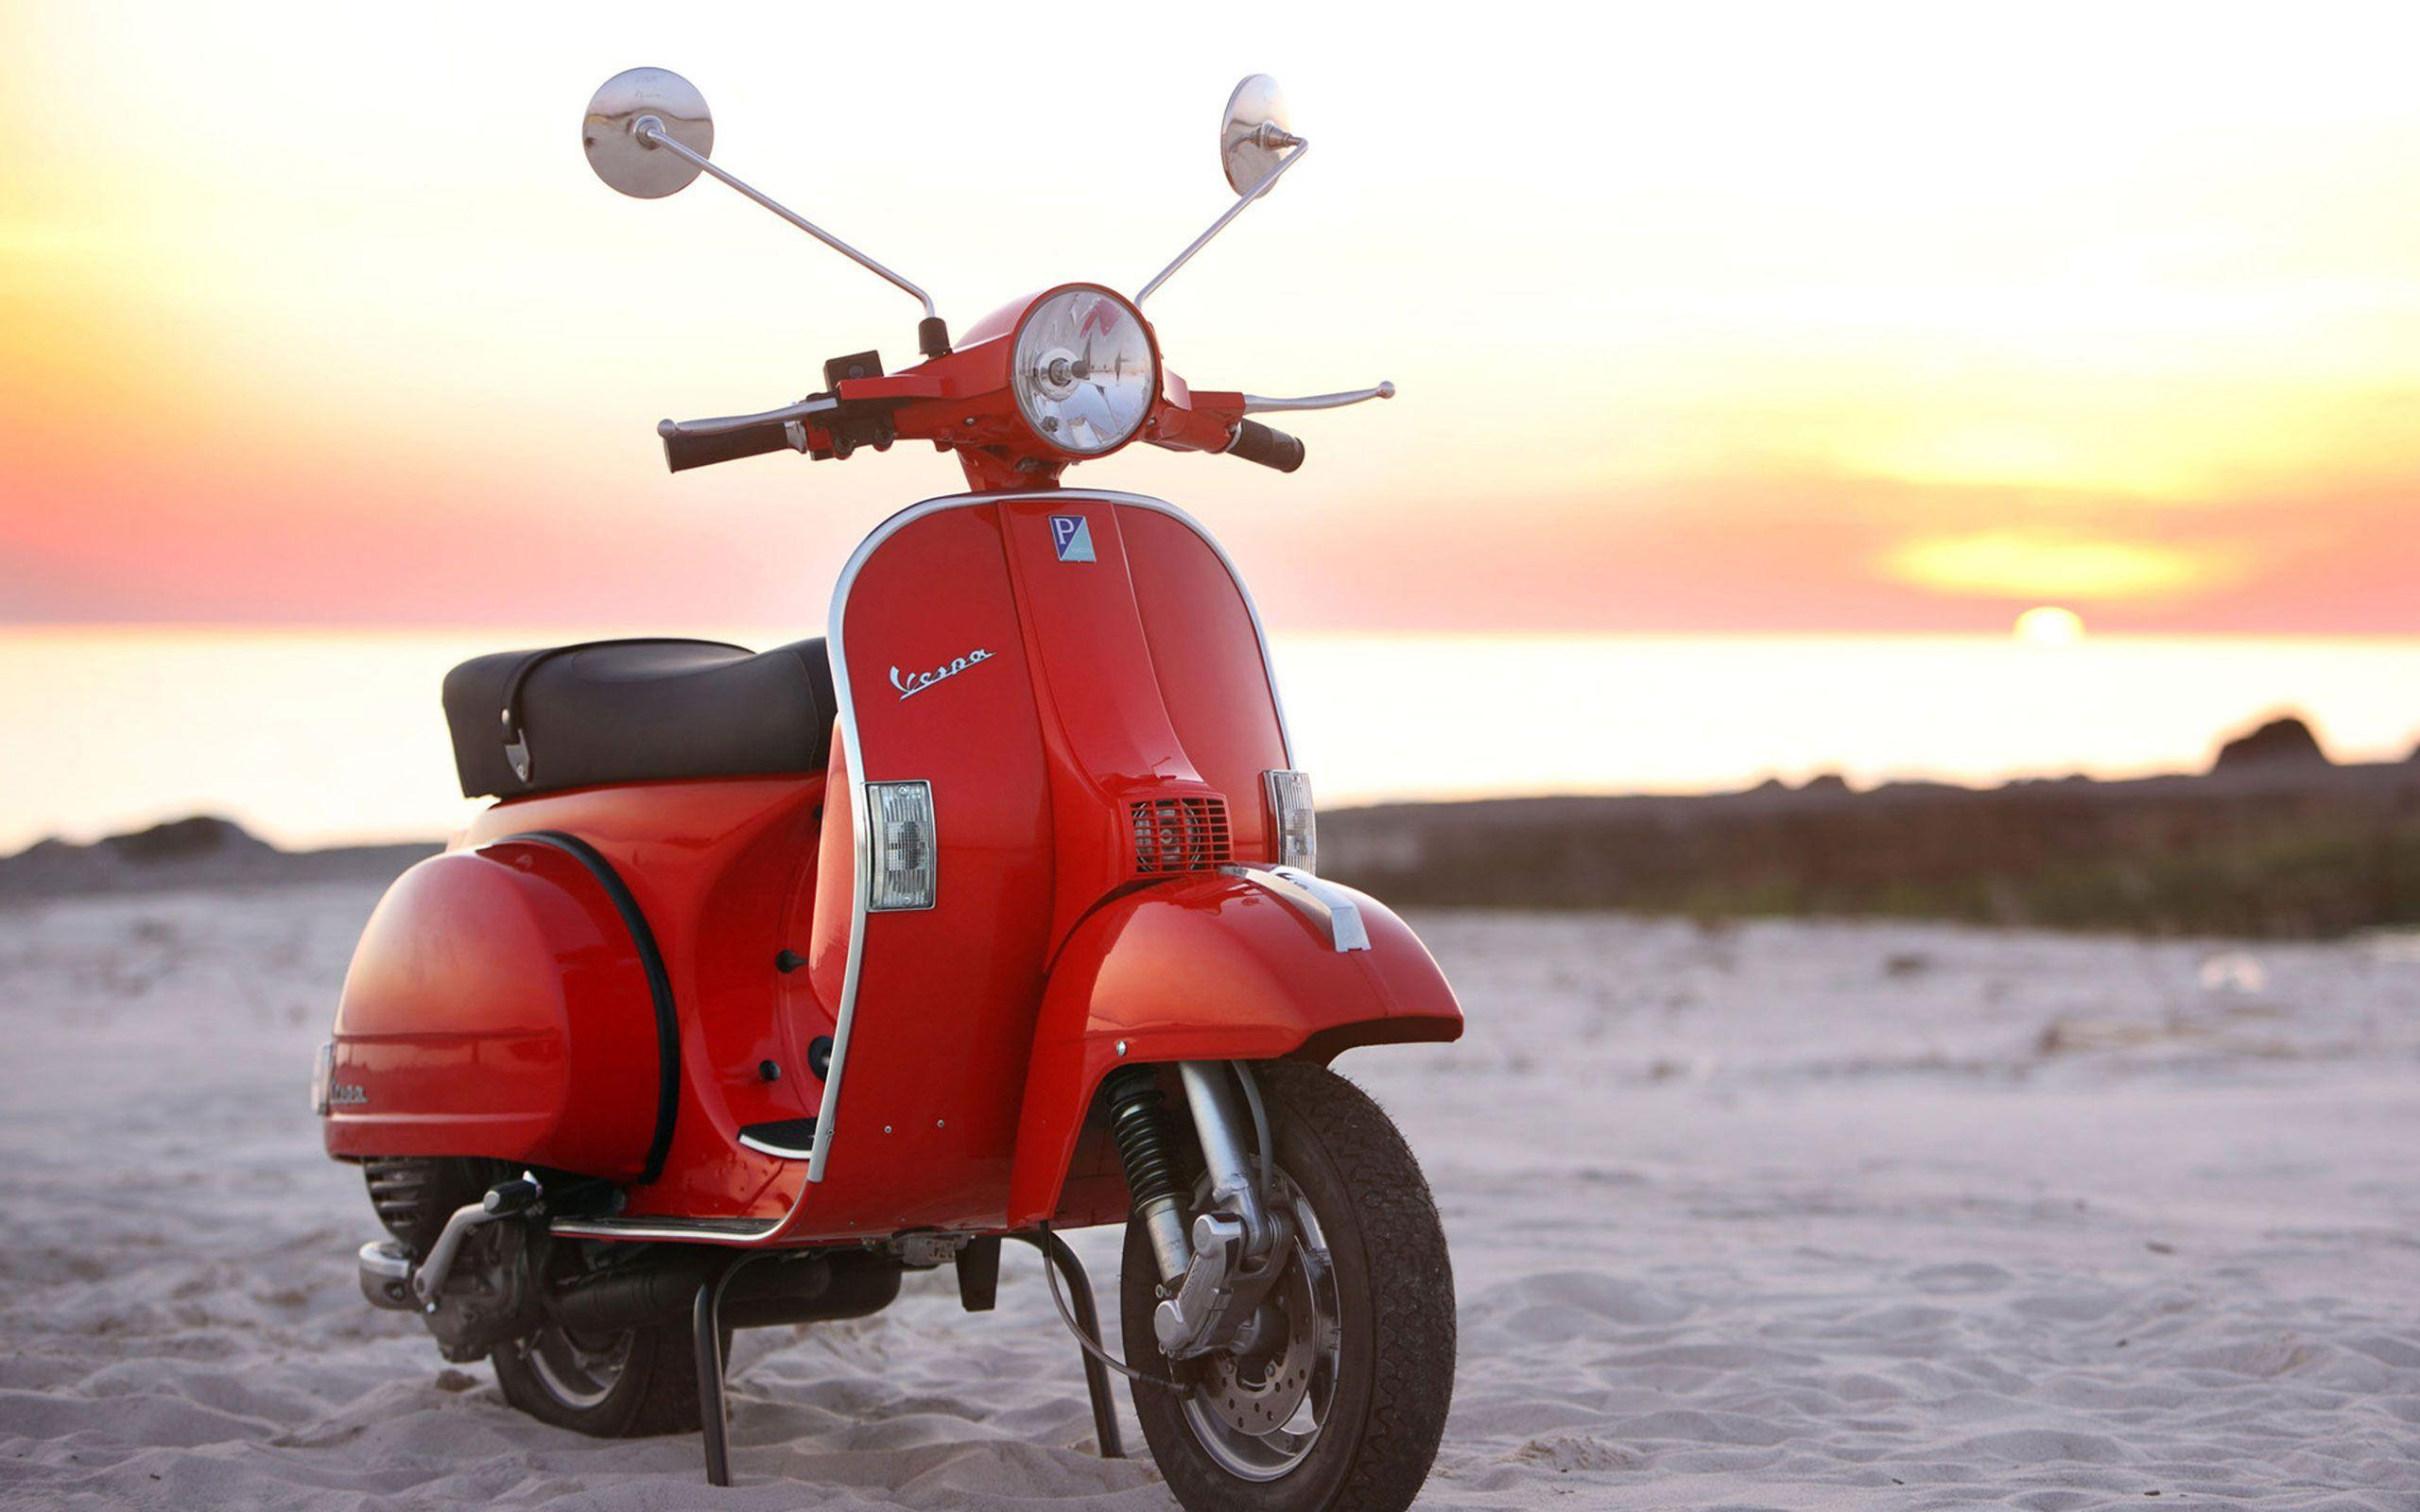 A Vespa PX 125 motorcycles HD Wallpapers 2560x1600